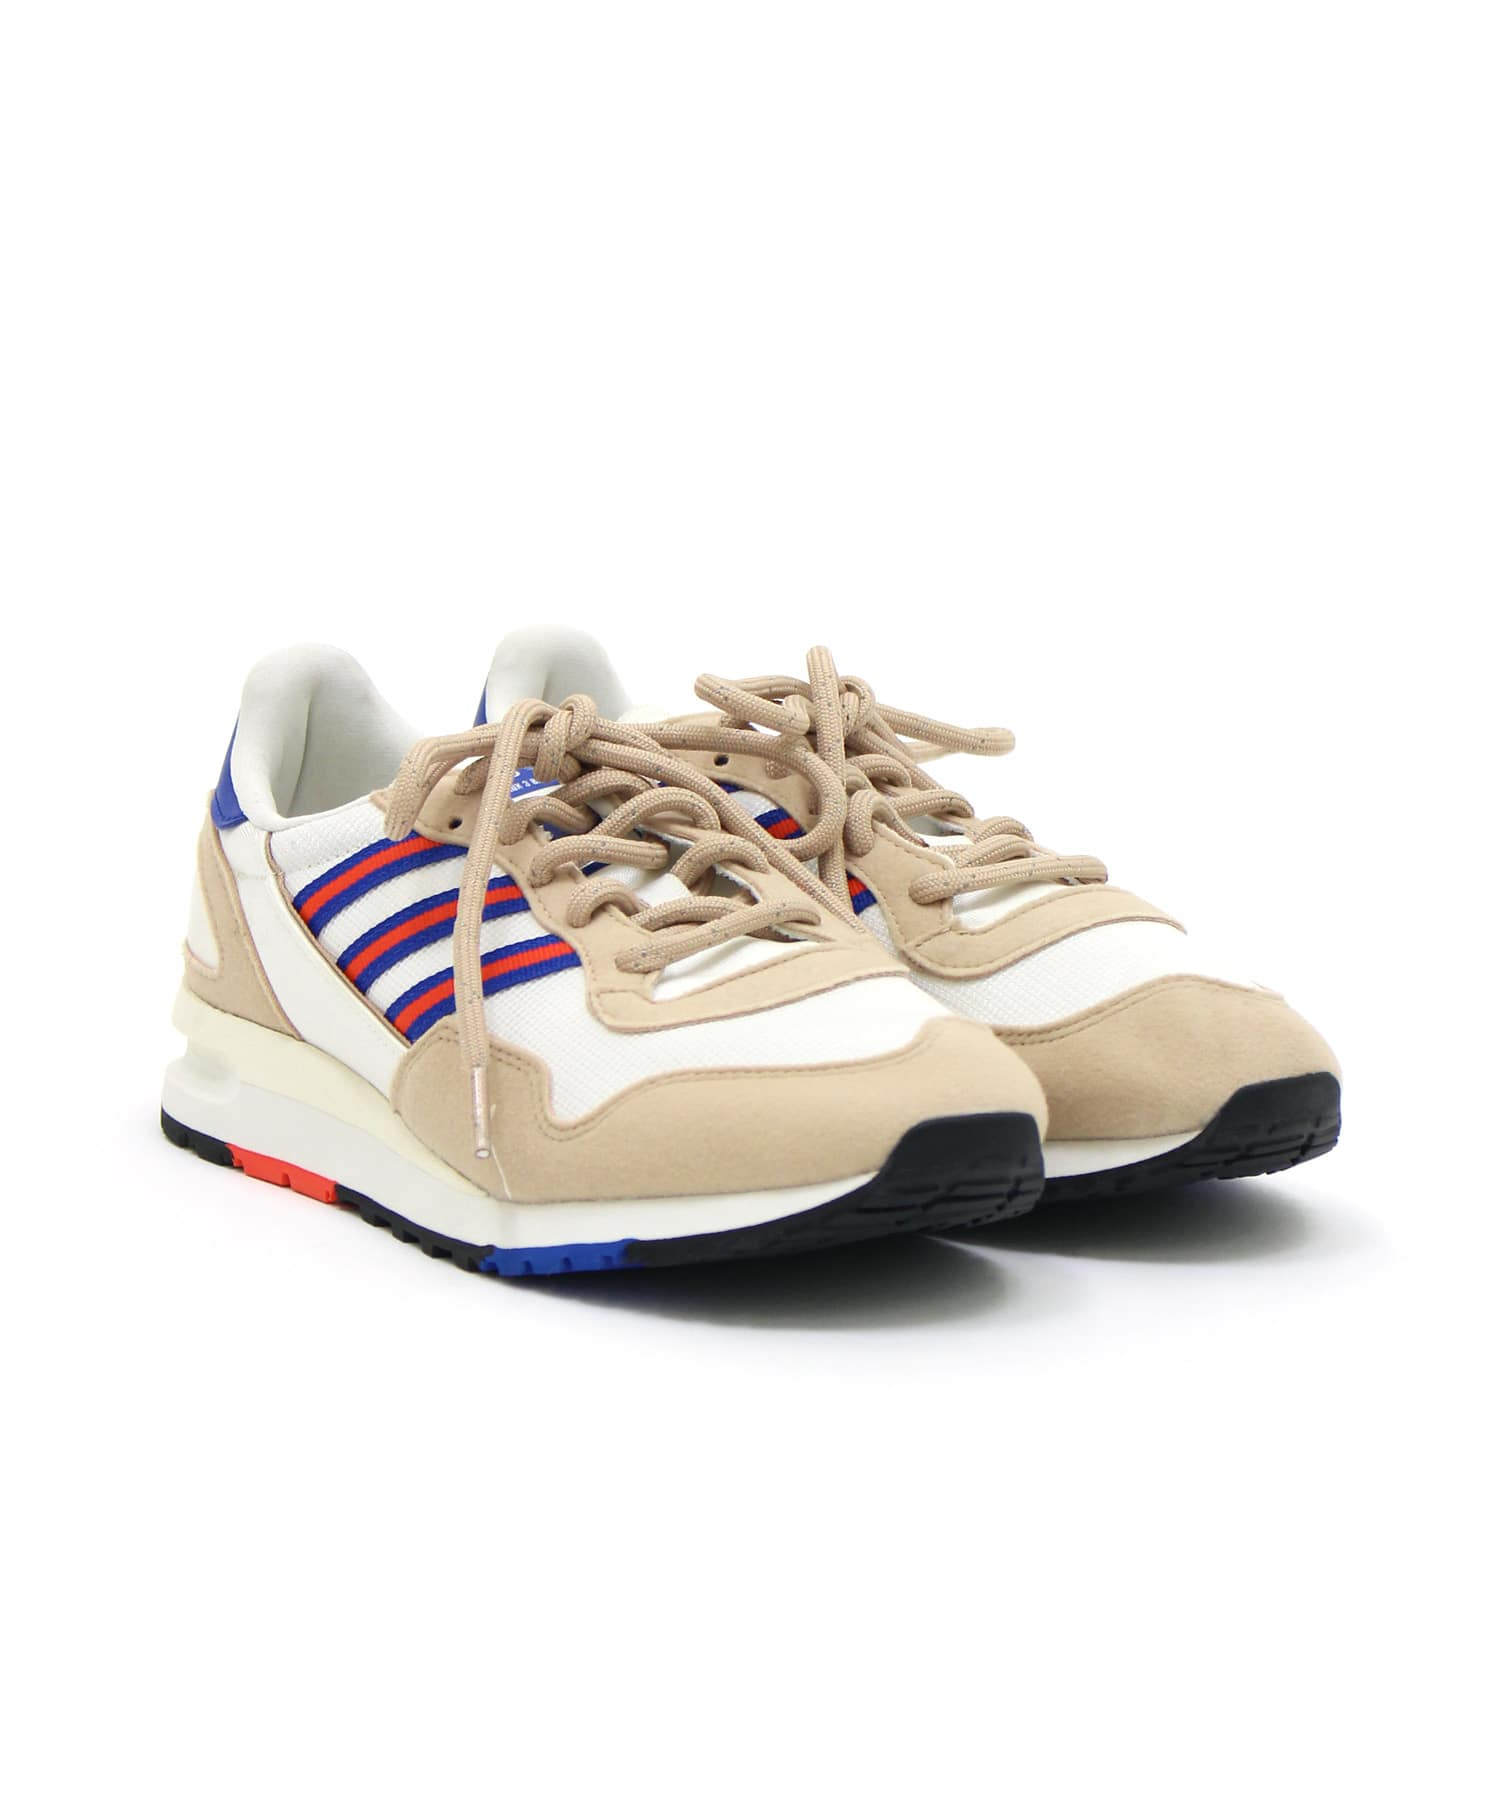 <adidas originals>LOWERTREE